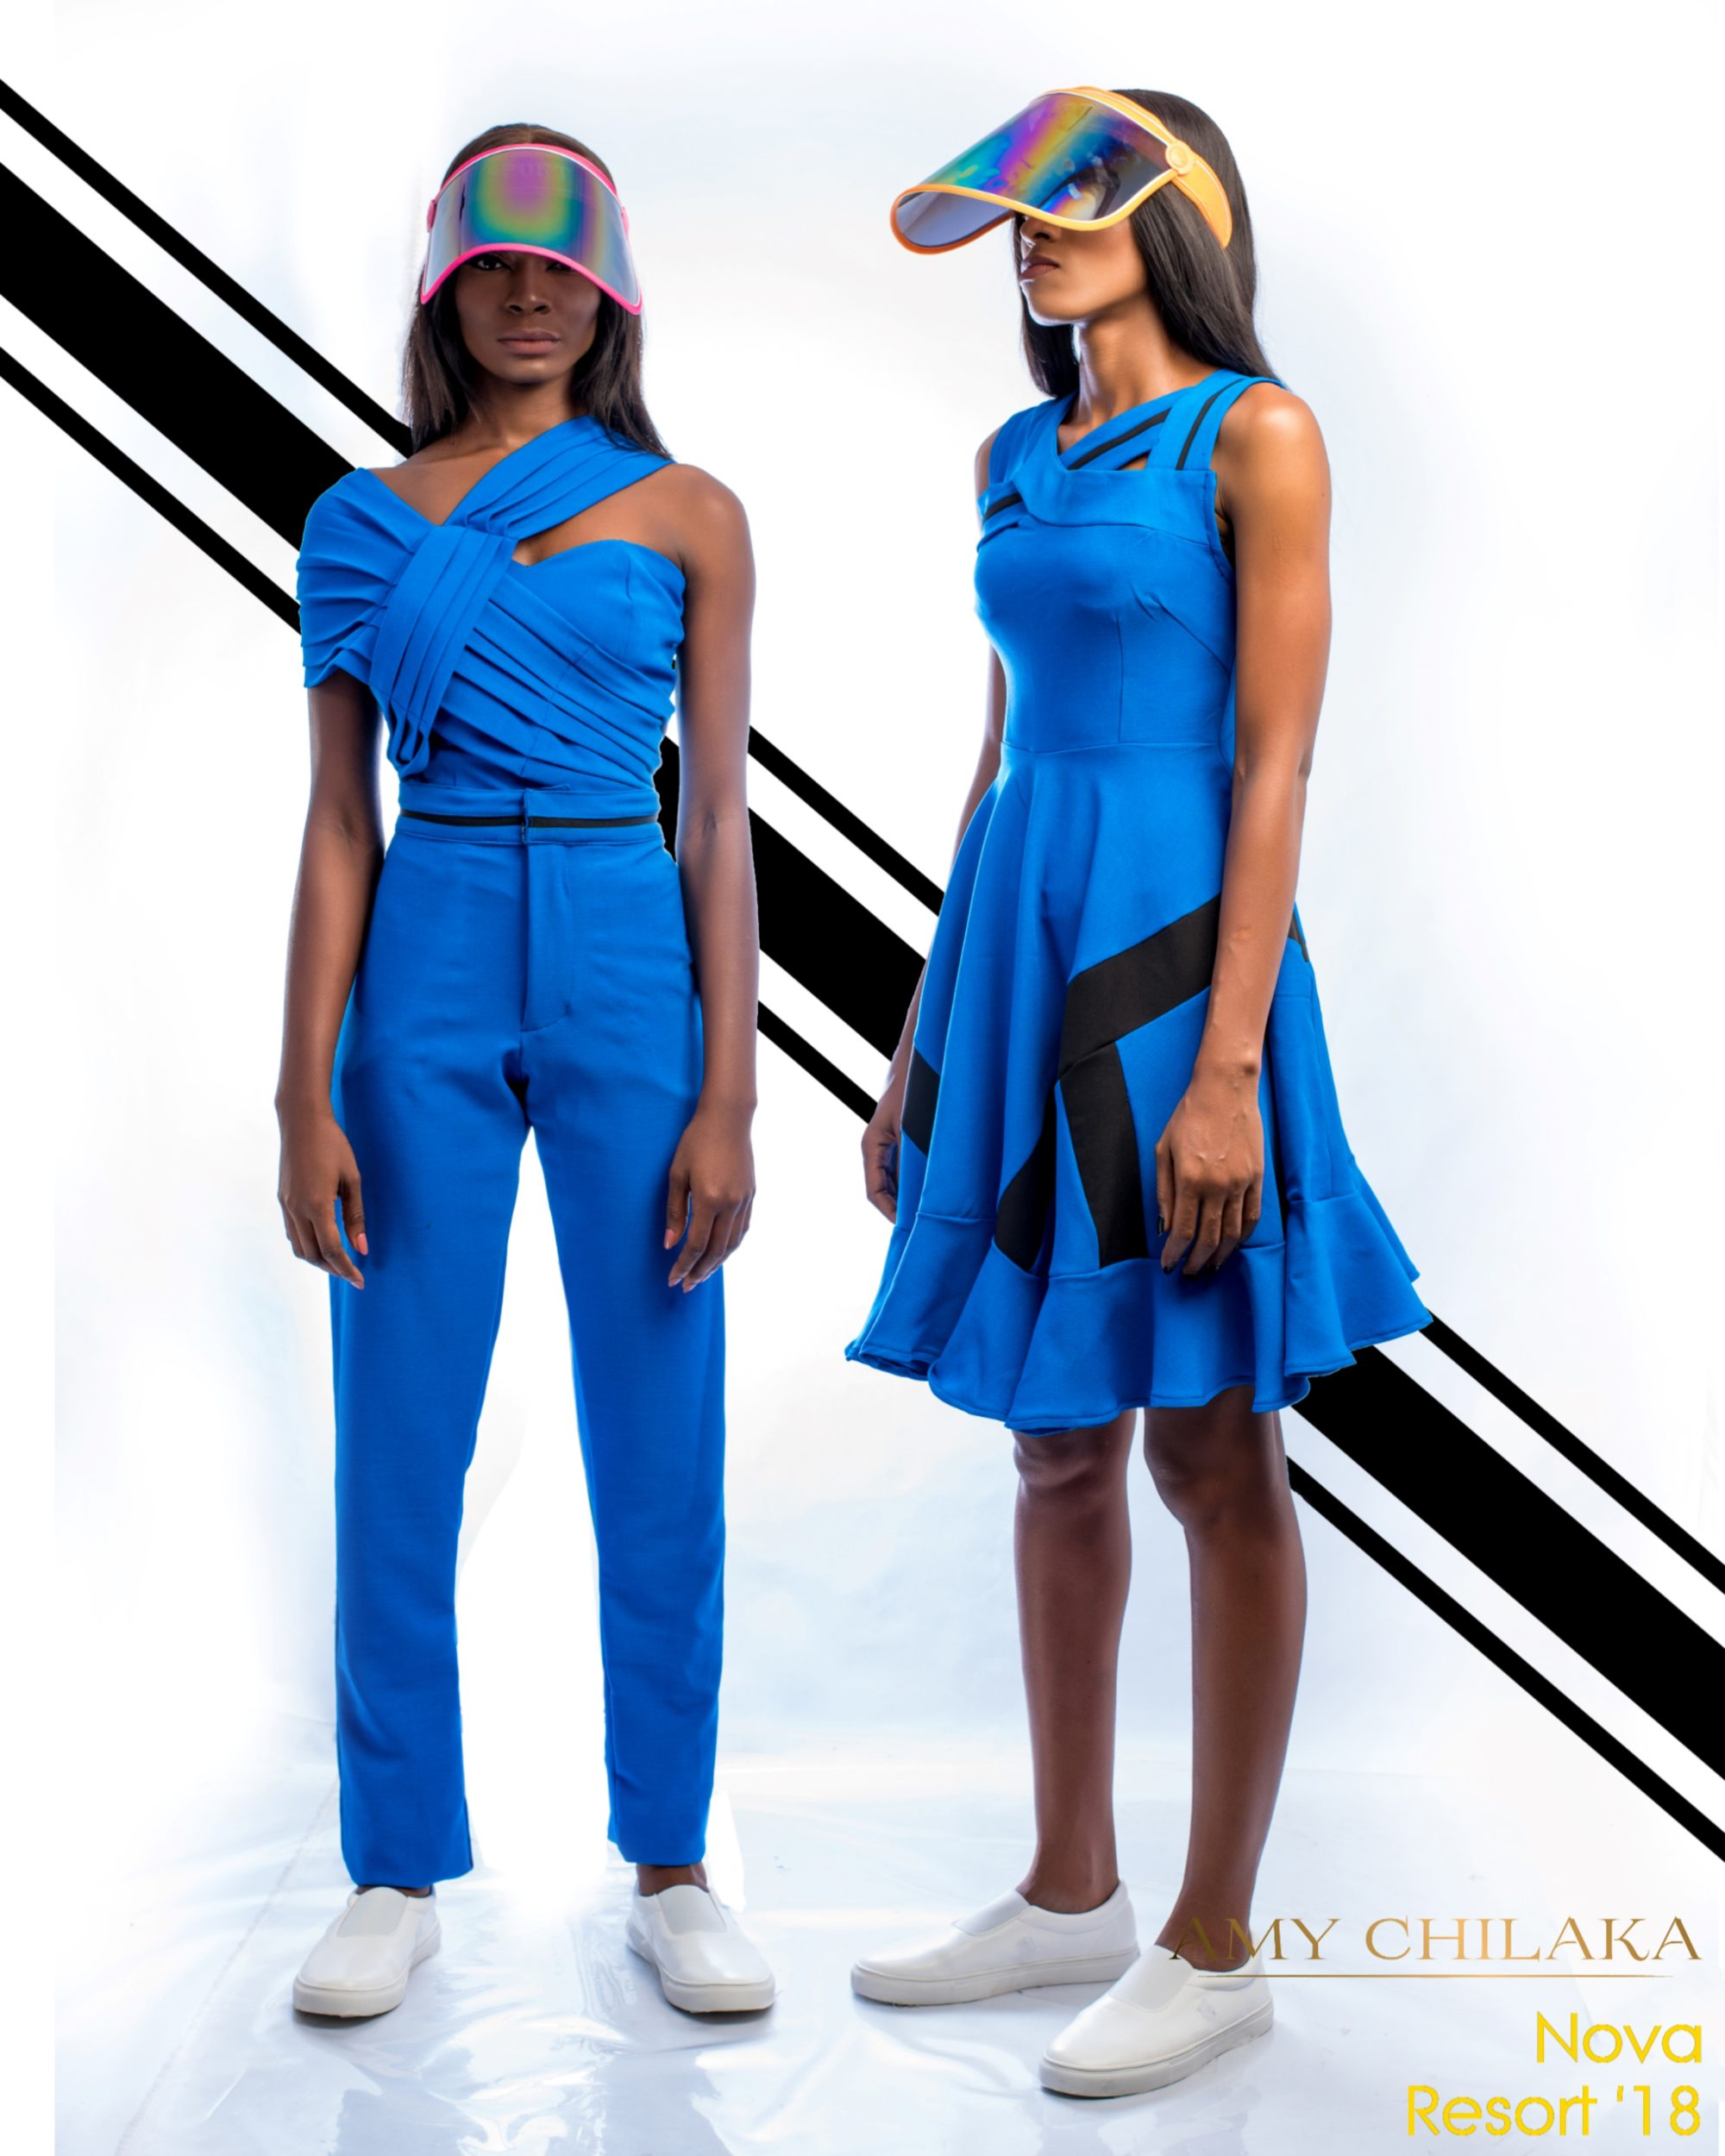 Amy Chilaka Re-Interprets Athleisure Through a Feminine Lens With the Nova Collection